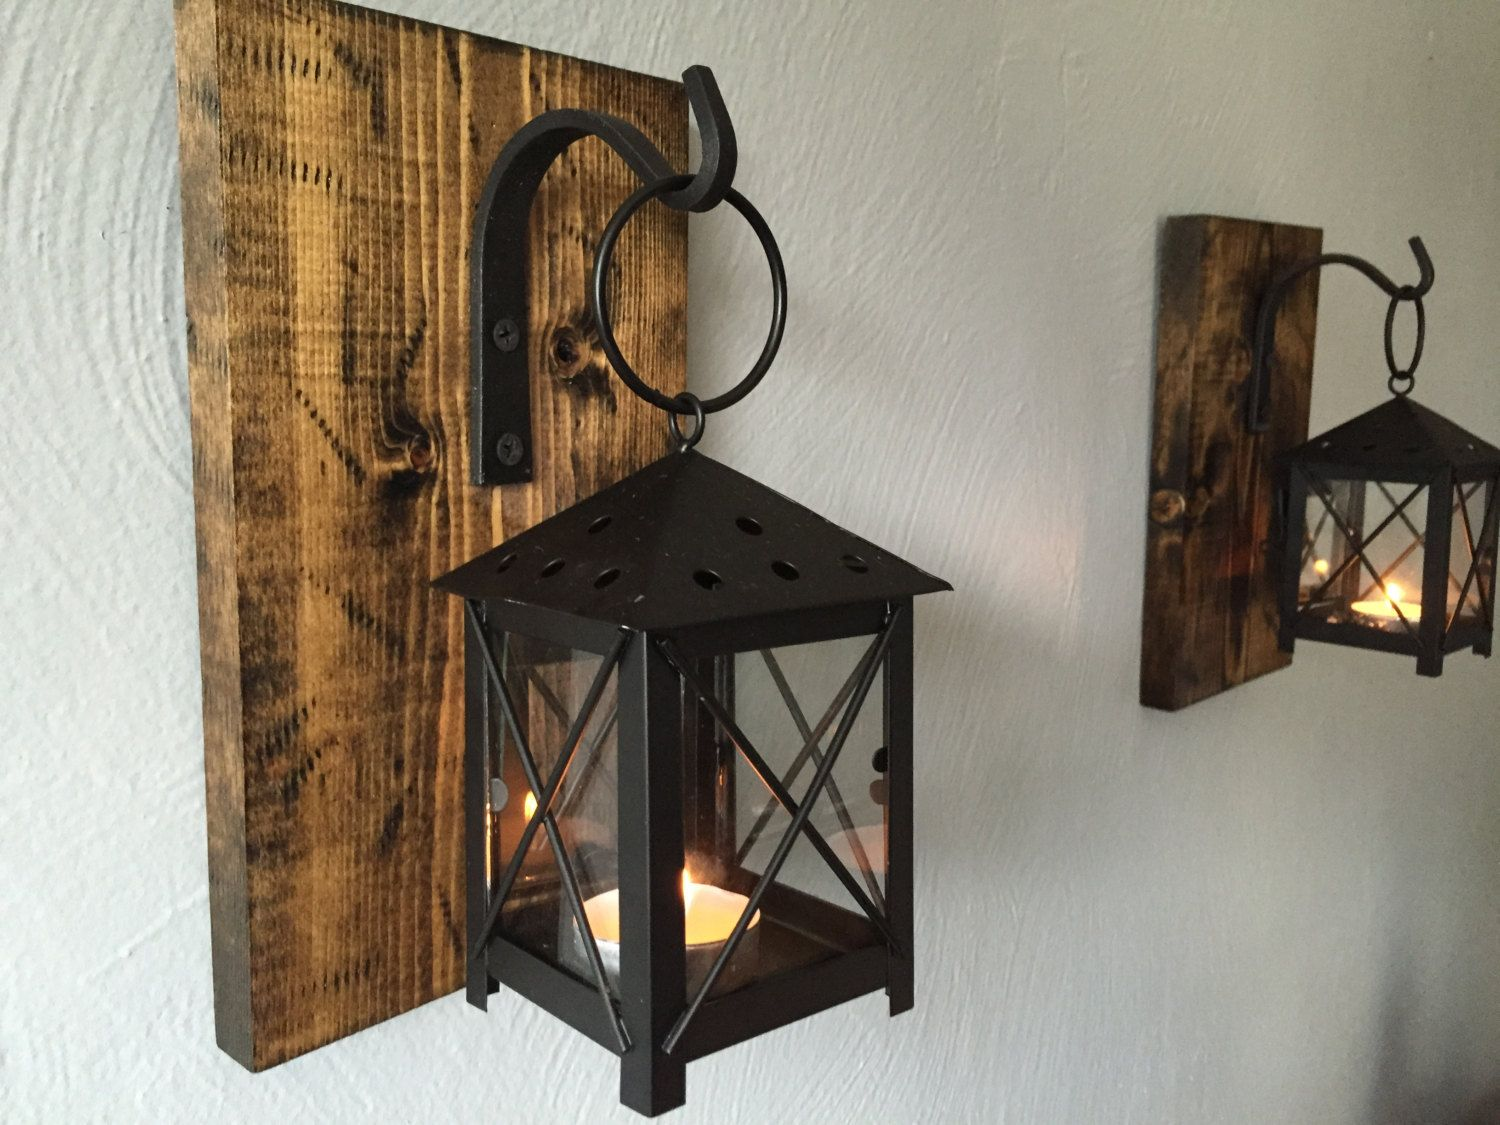 Rustic Candle Wall Sconces Popular Beautiful Chandeliers Rustic Candle Wall Sconces Wall Candles Wall Candle Holders